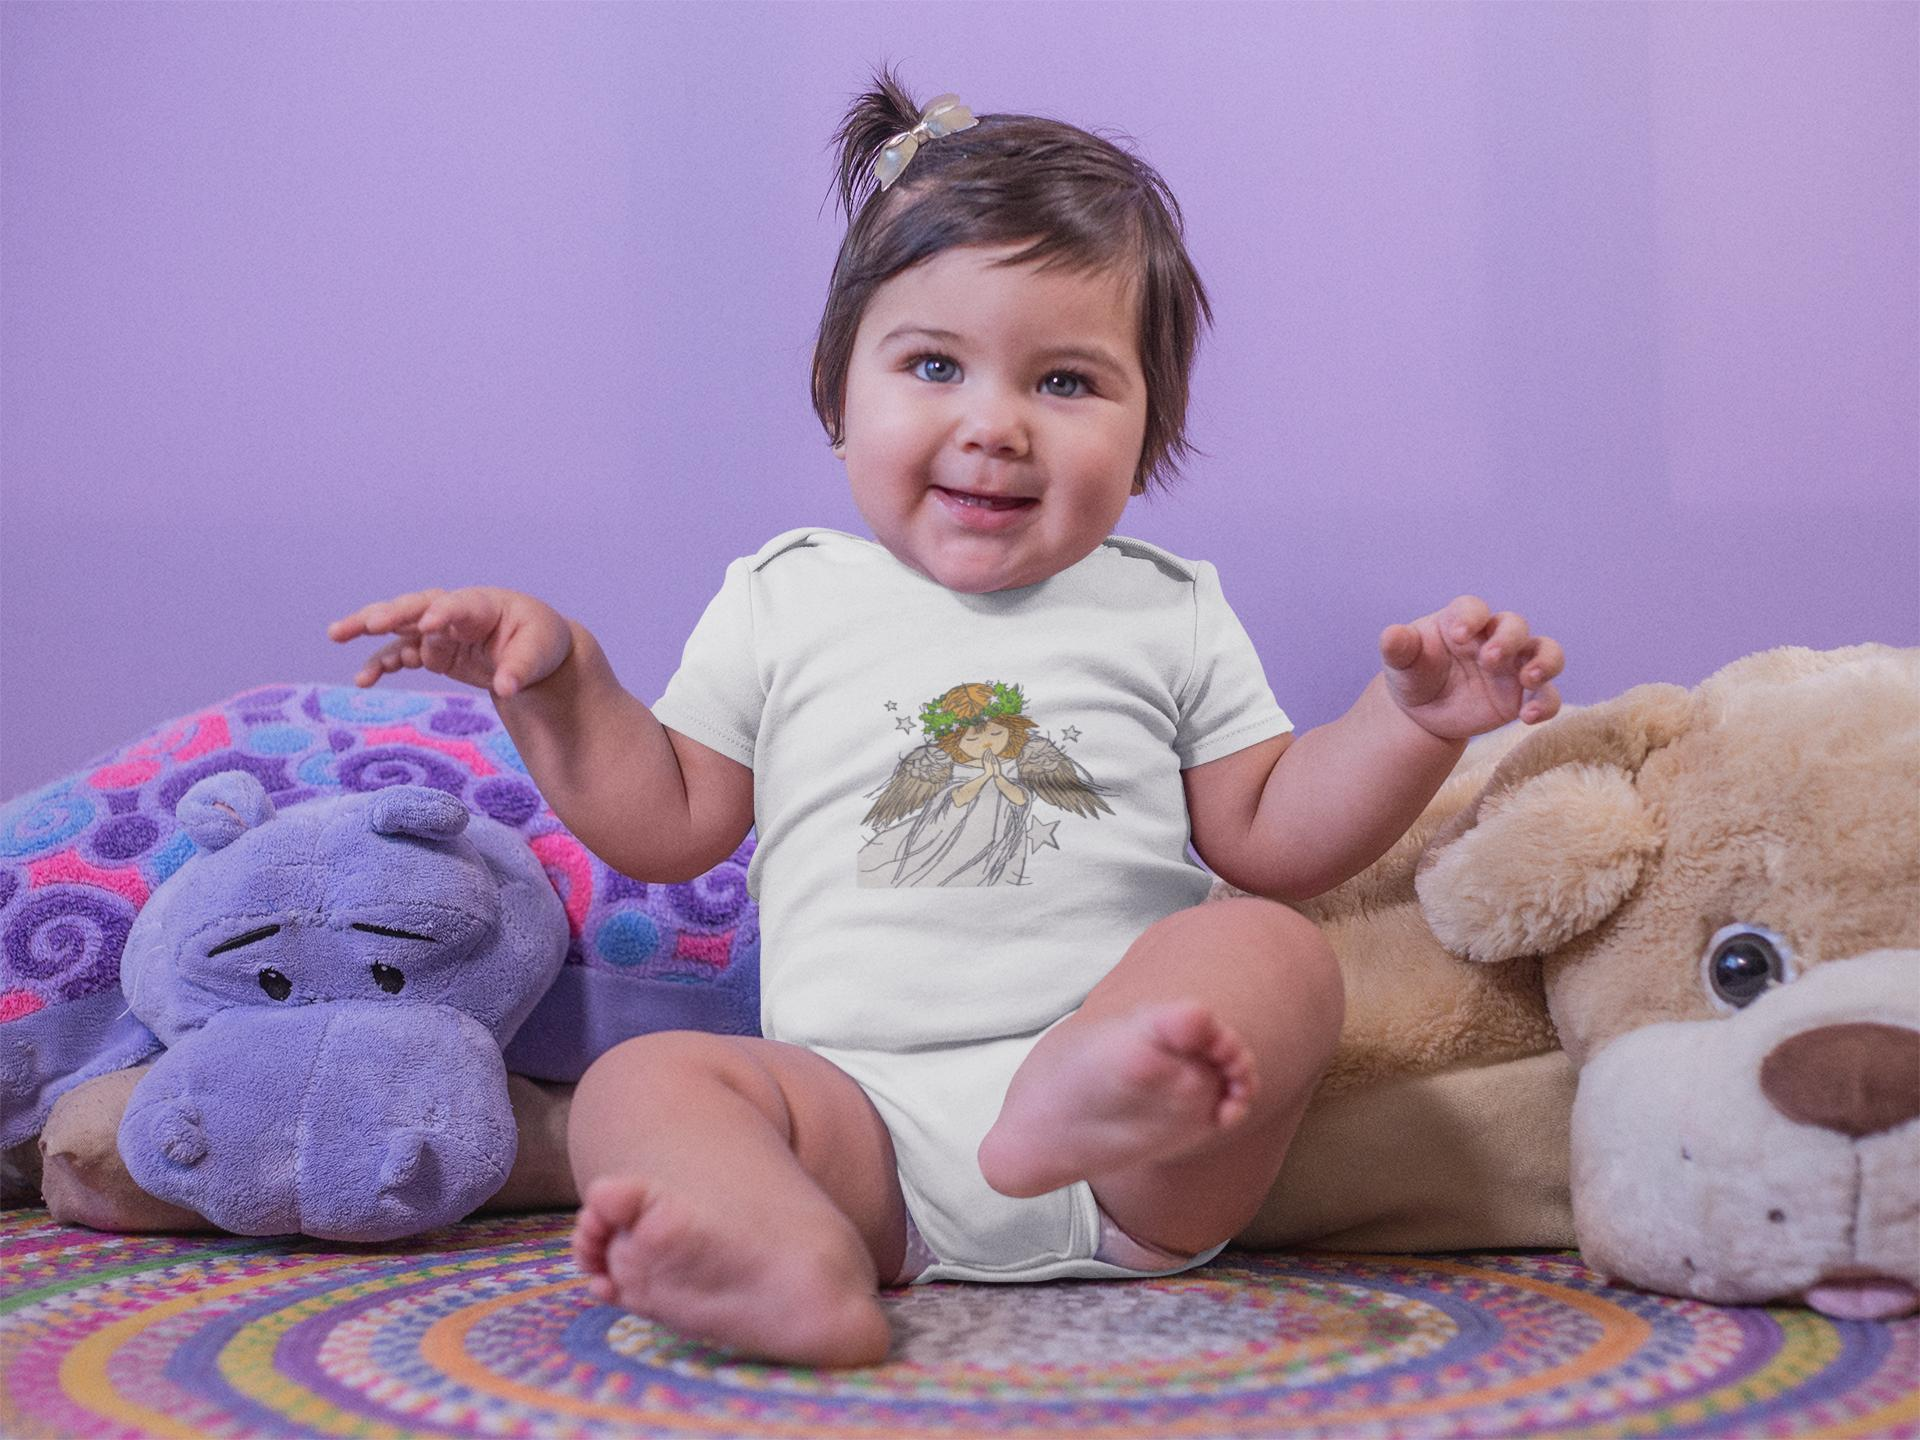 Embroidered baby clothing with Angel design